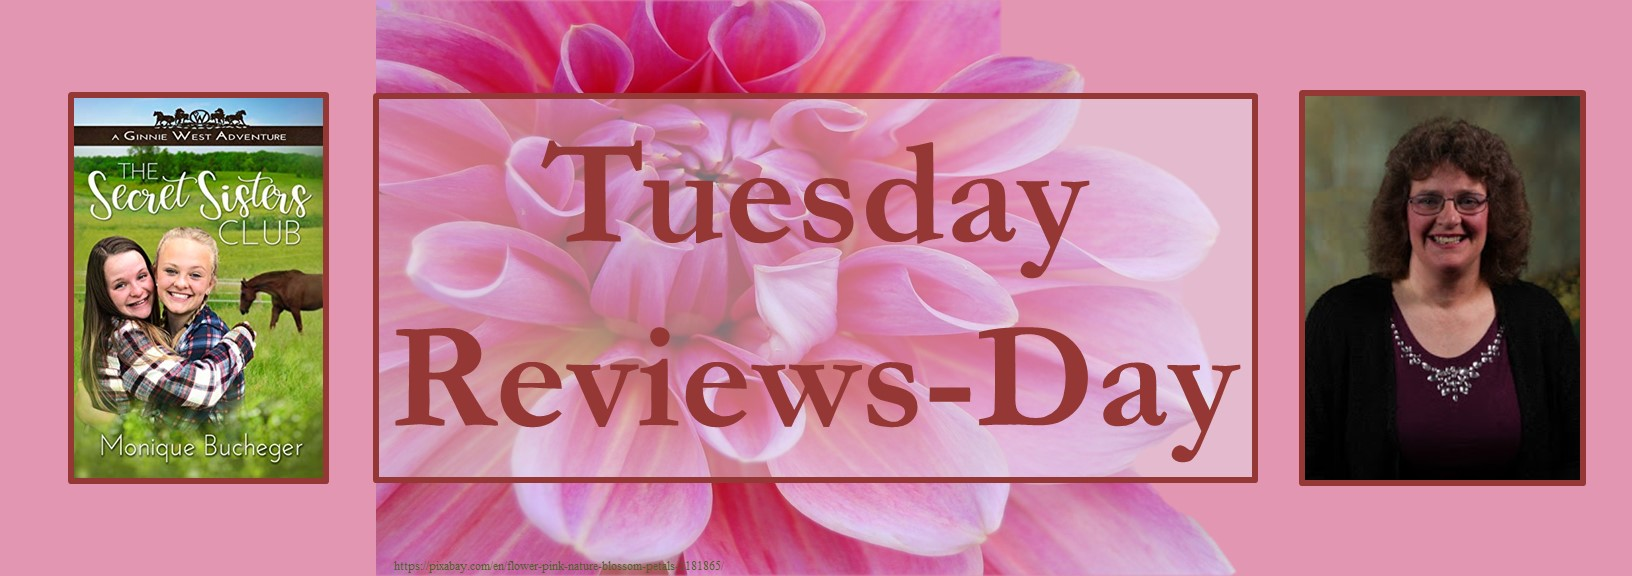 092920 - secret sisters - tuesday reviews day banner